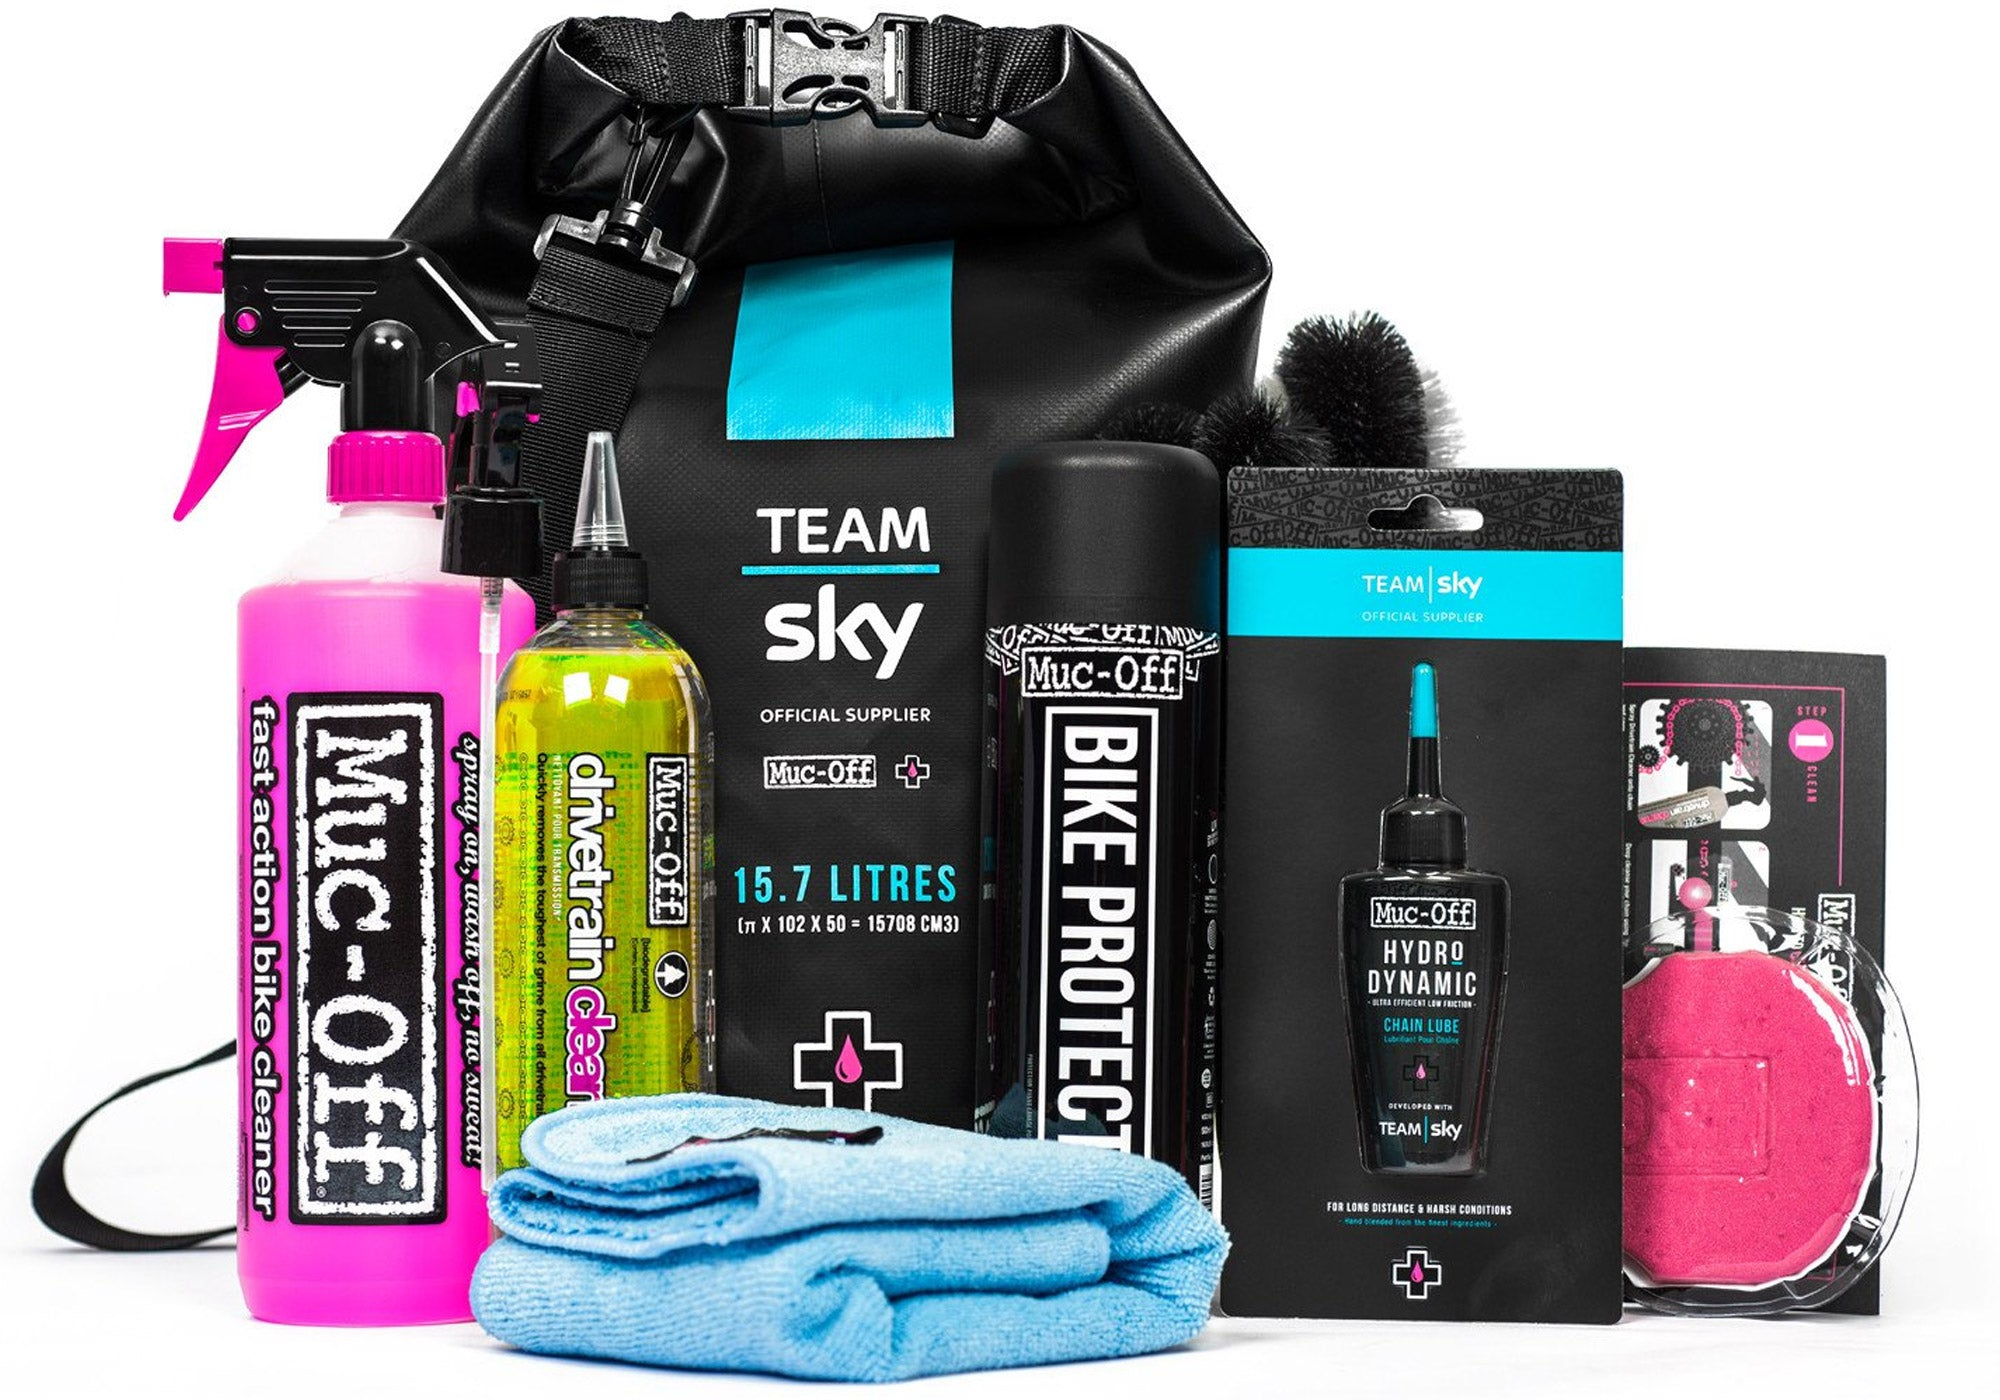 Muc-Off Team Sky Clean & Lube Dry Bag Kit Woolys Wheels Sydney Paddington